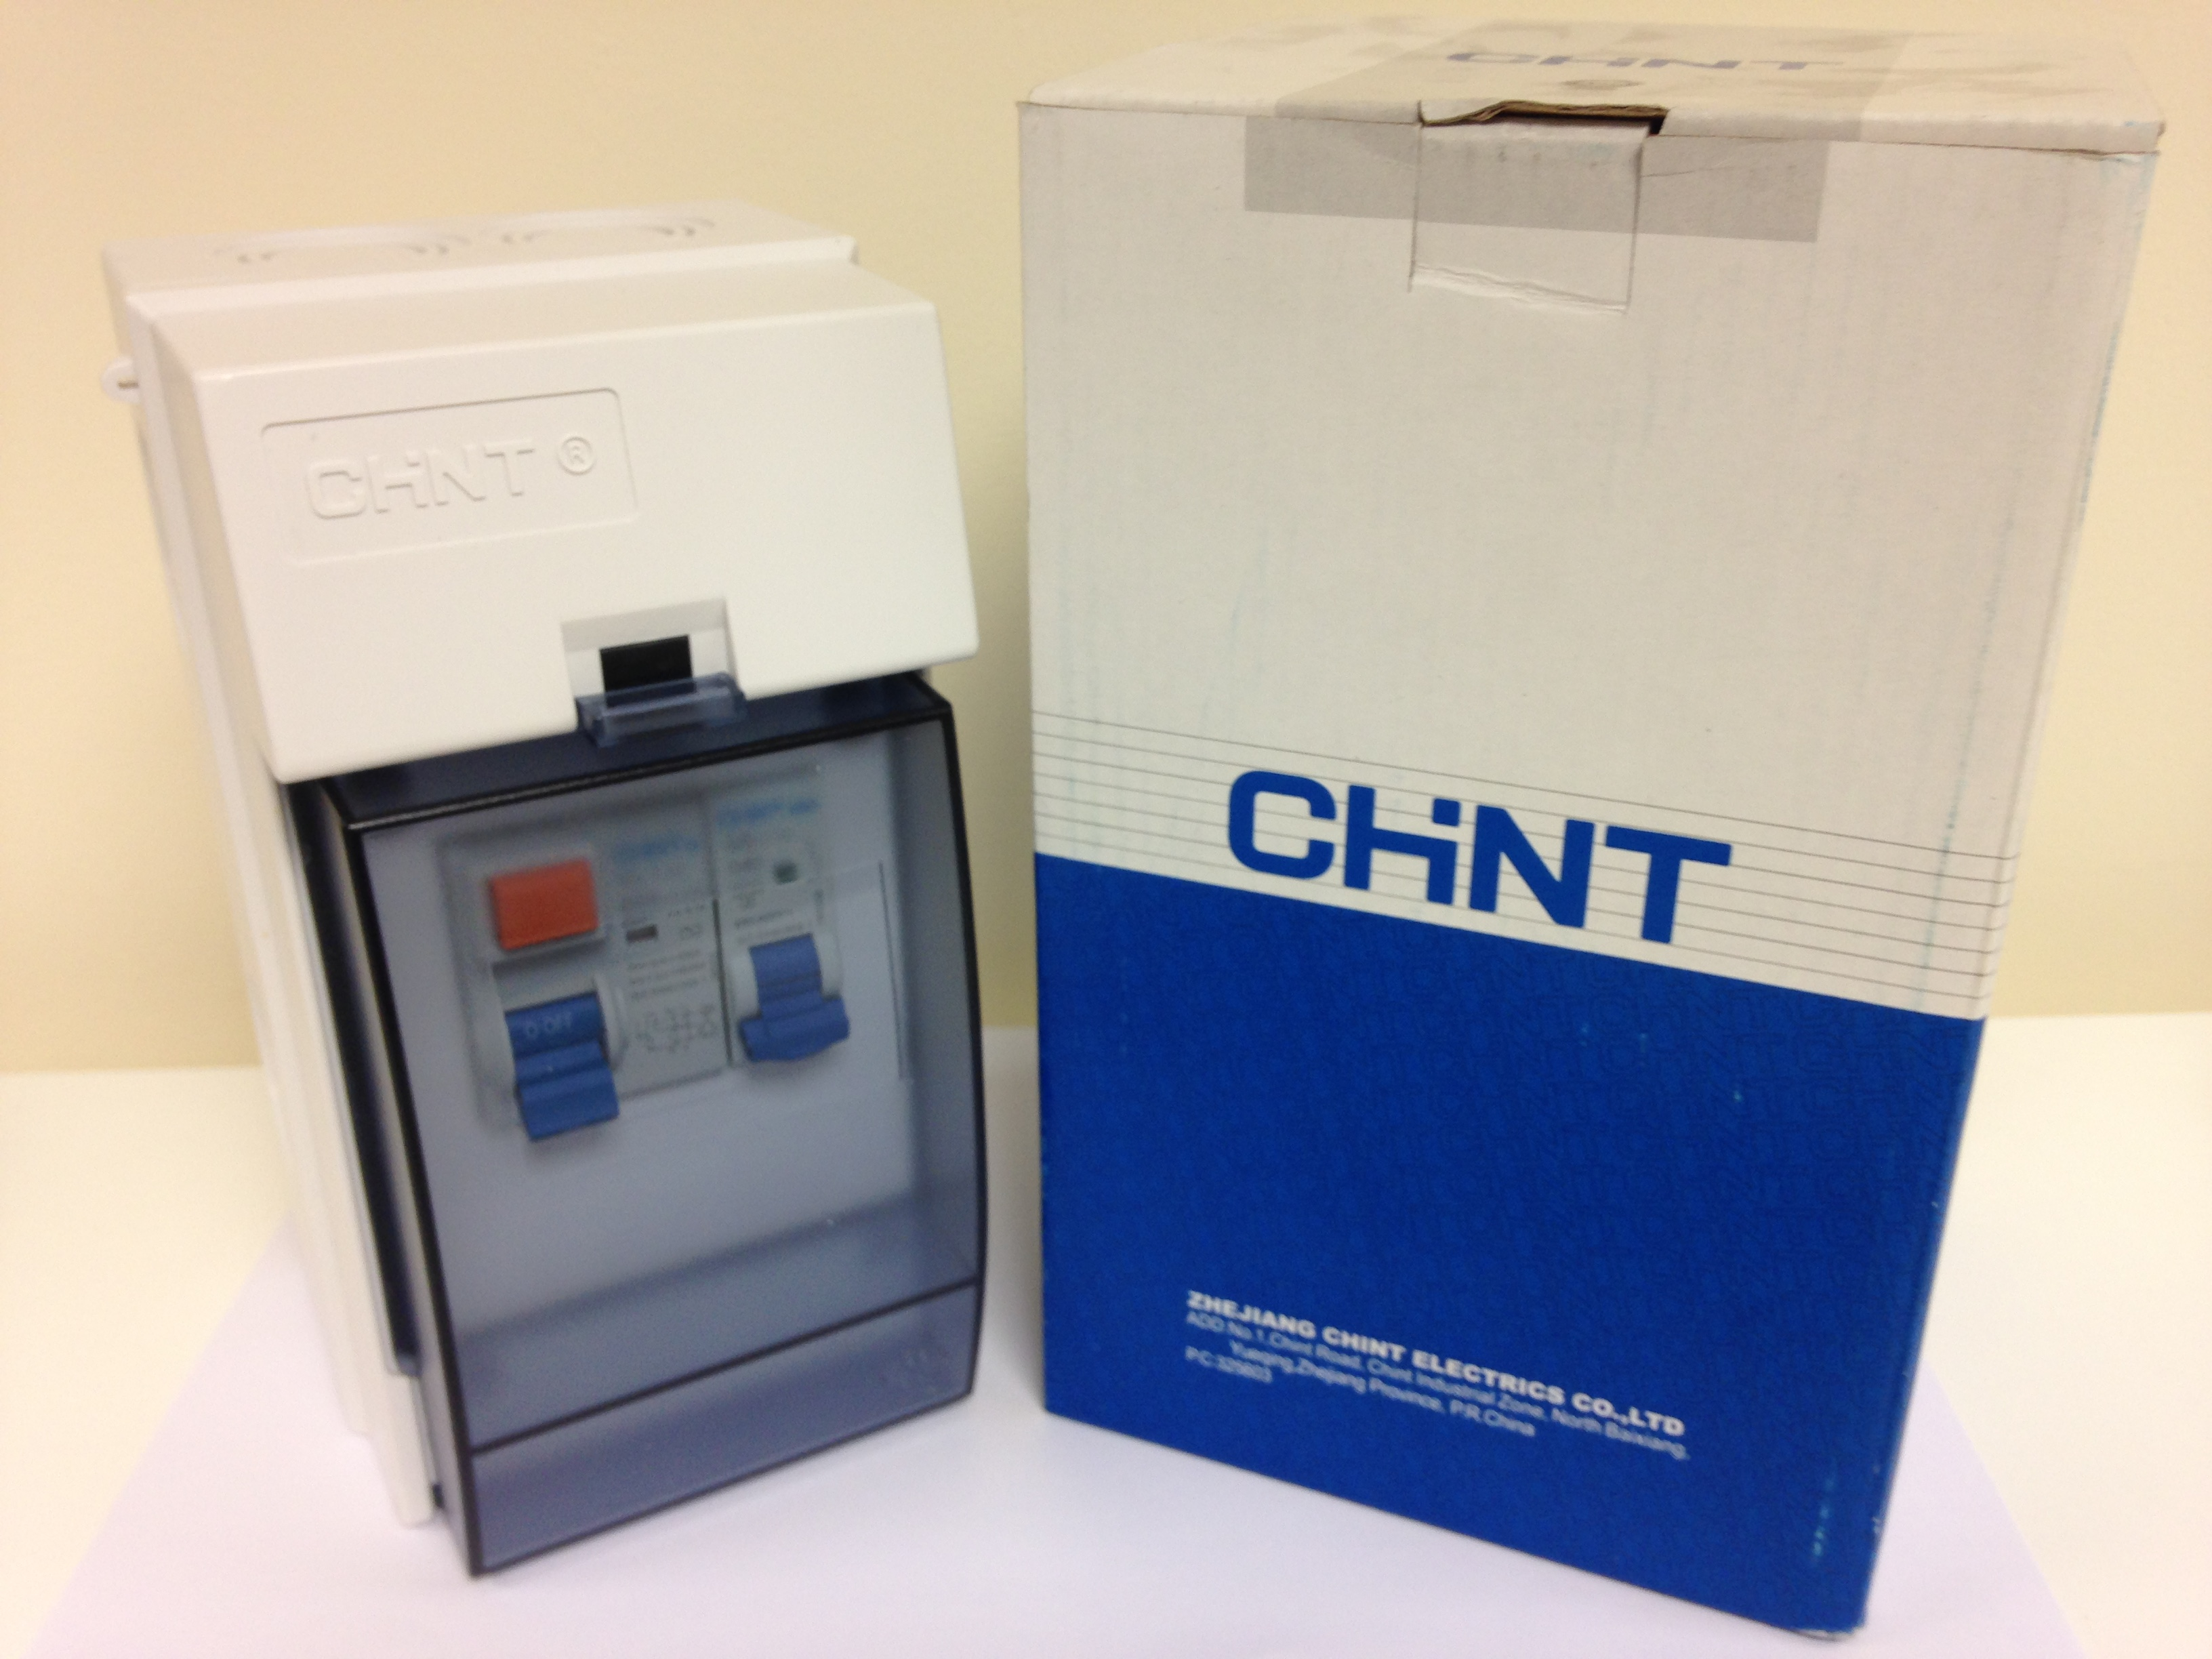 chint garage shed consumer unit ip65 rated fuse box 63a rcd 1x40a Breaker Box chint garage shed consumer unit ip65 rated fuse box mcb a29800